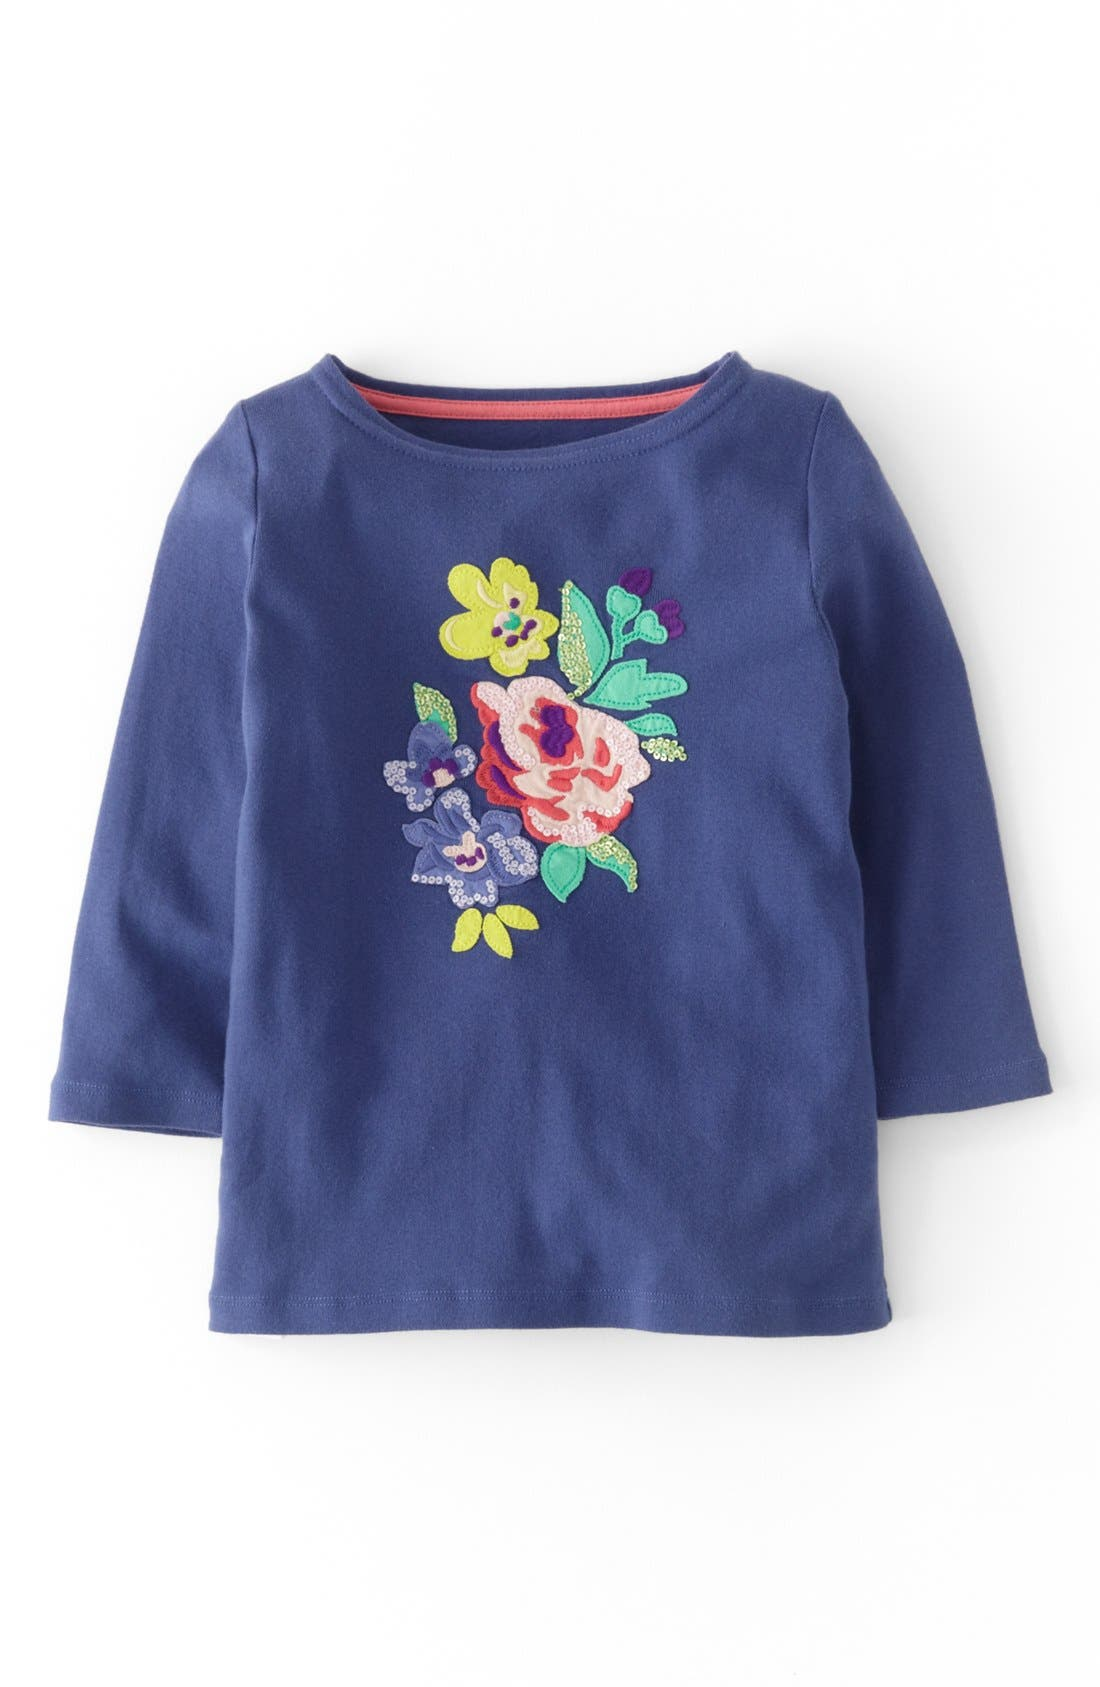 Main Image - Mini Boden 'Twinkly' Long Sleeve Tee (Toddler Girls, Little Girls & Big Girls)